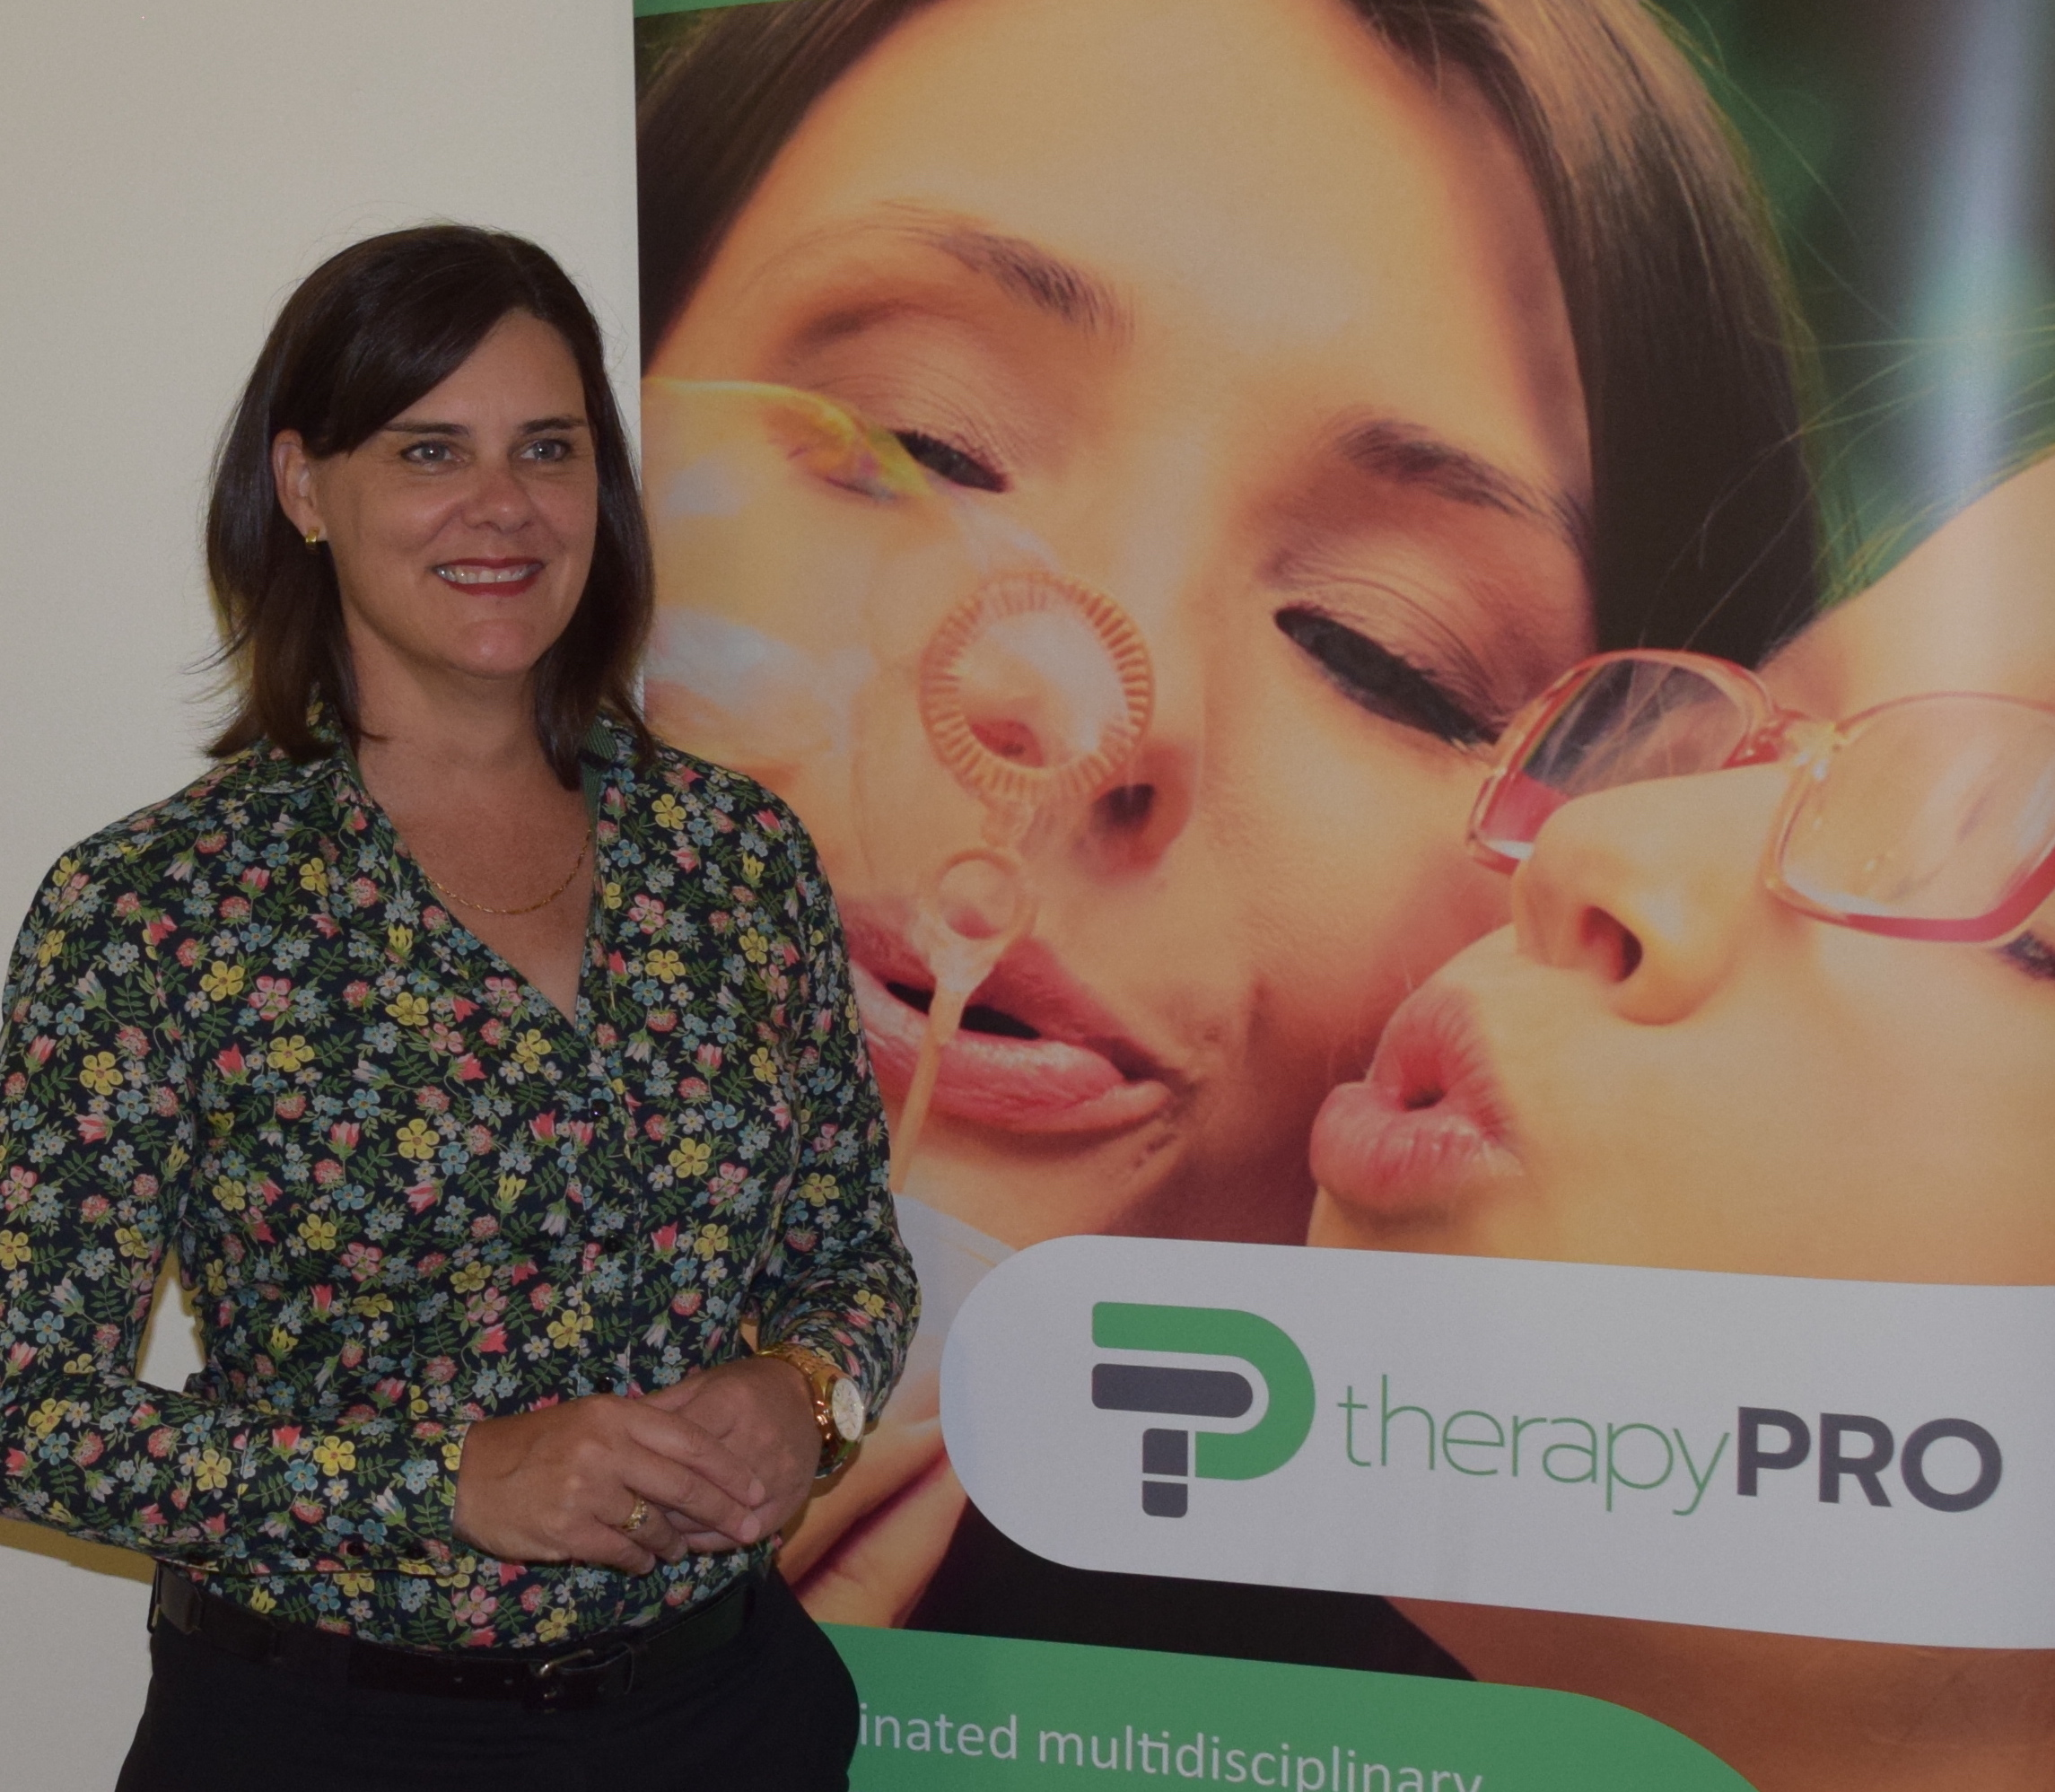 Therapy Pro General Manager Karen Staal